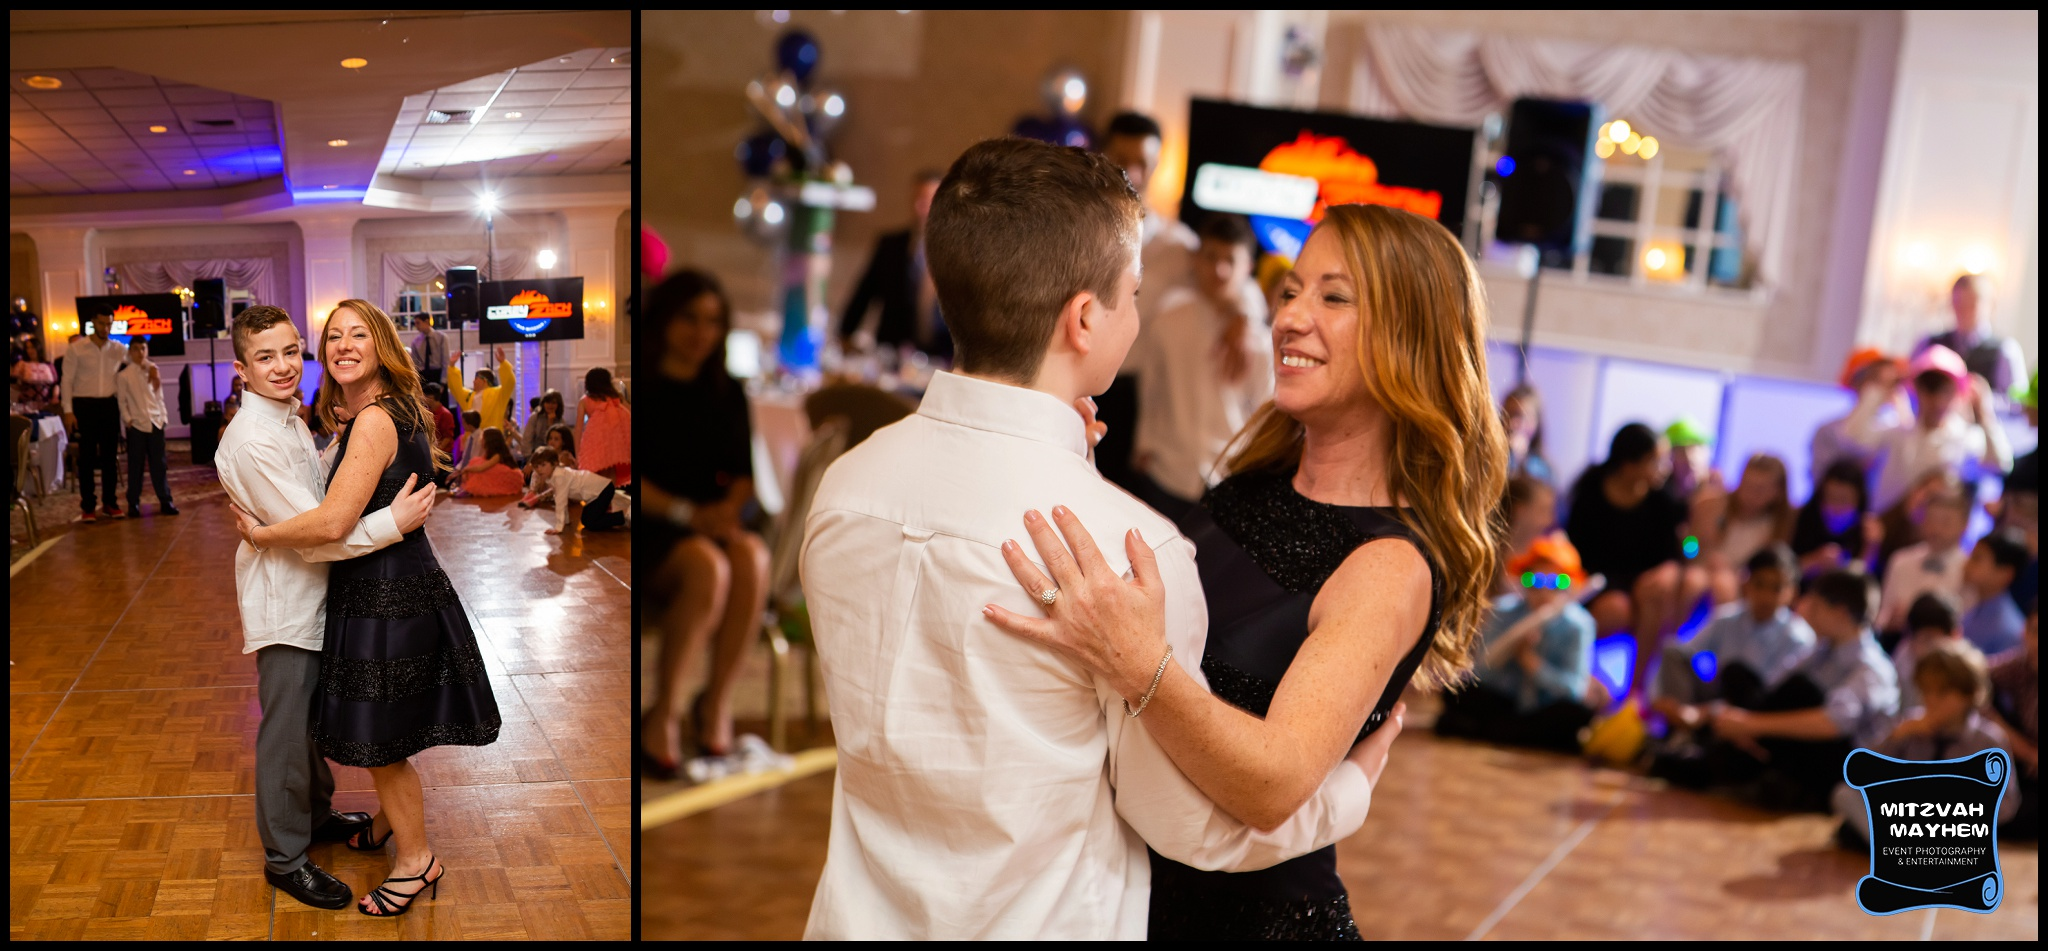 nj-mitzvah-photographer-bridgewater-manorl-25.JPG